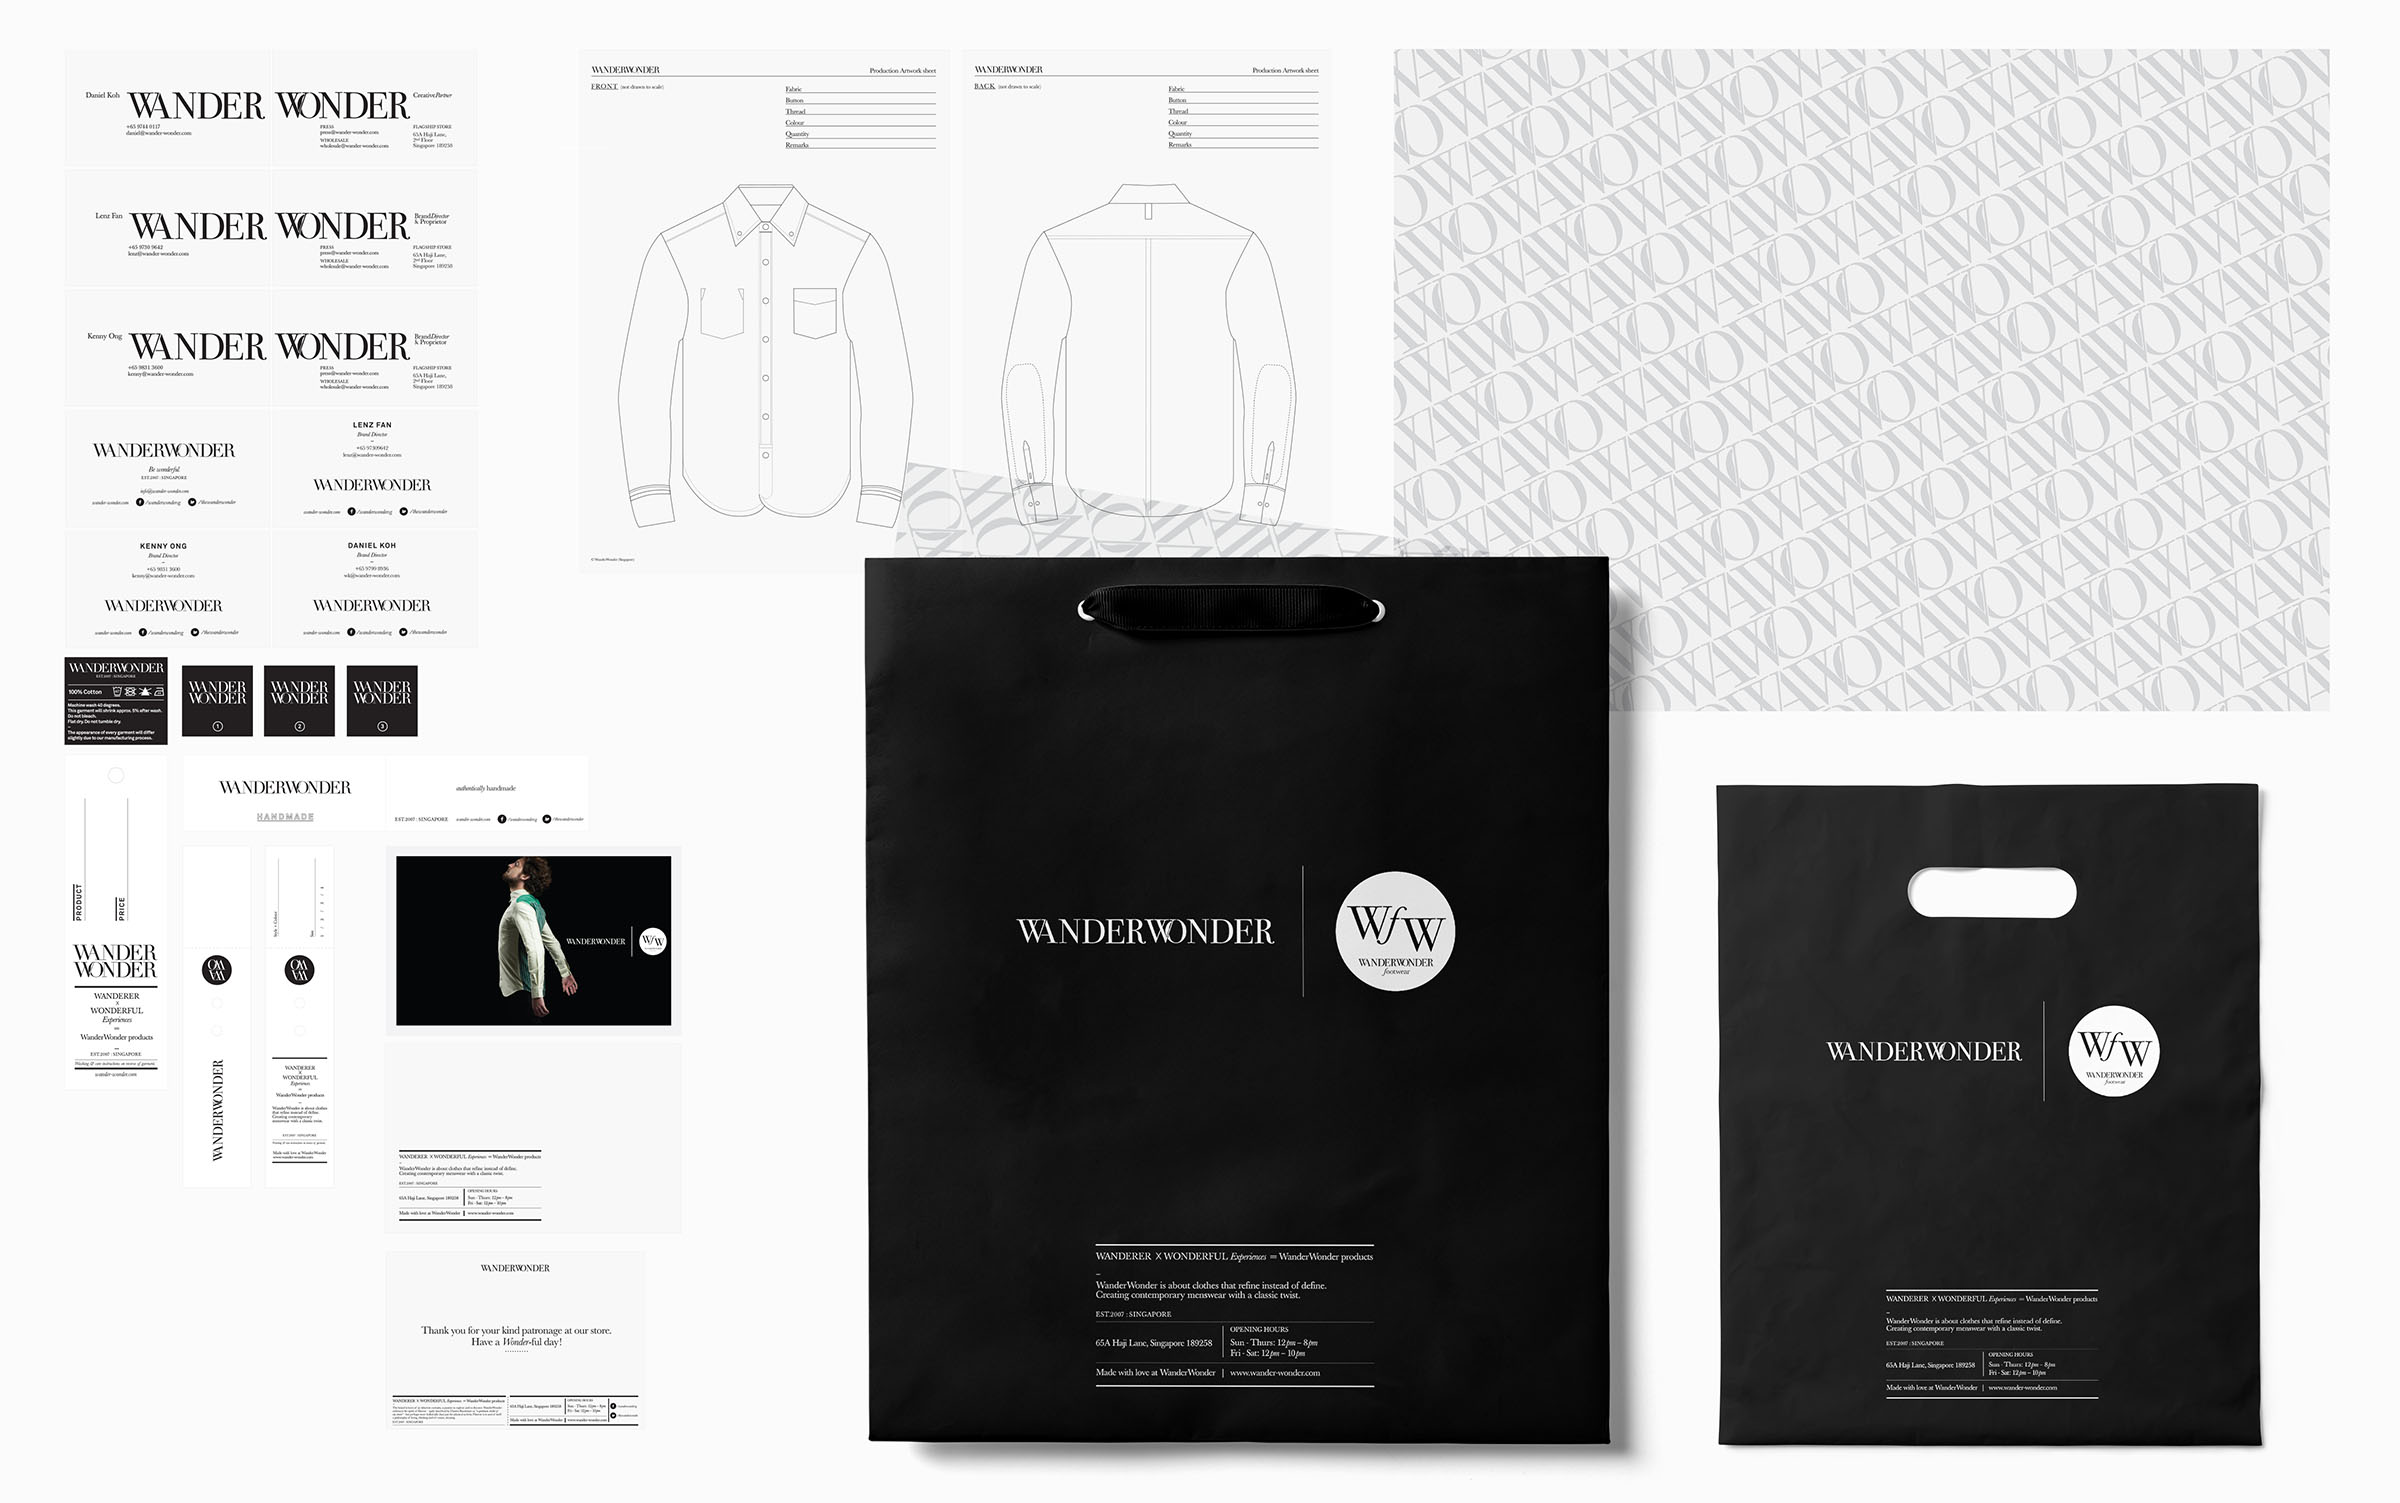 Wanderwonder_collateral system